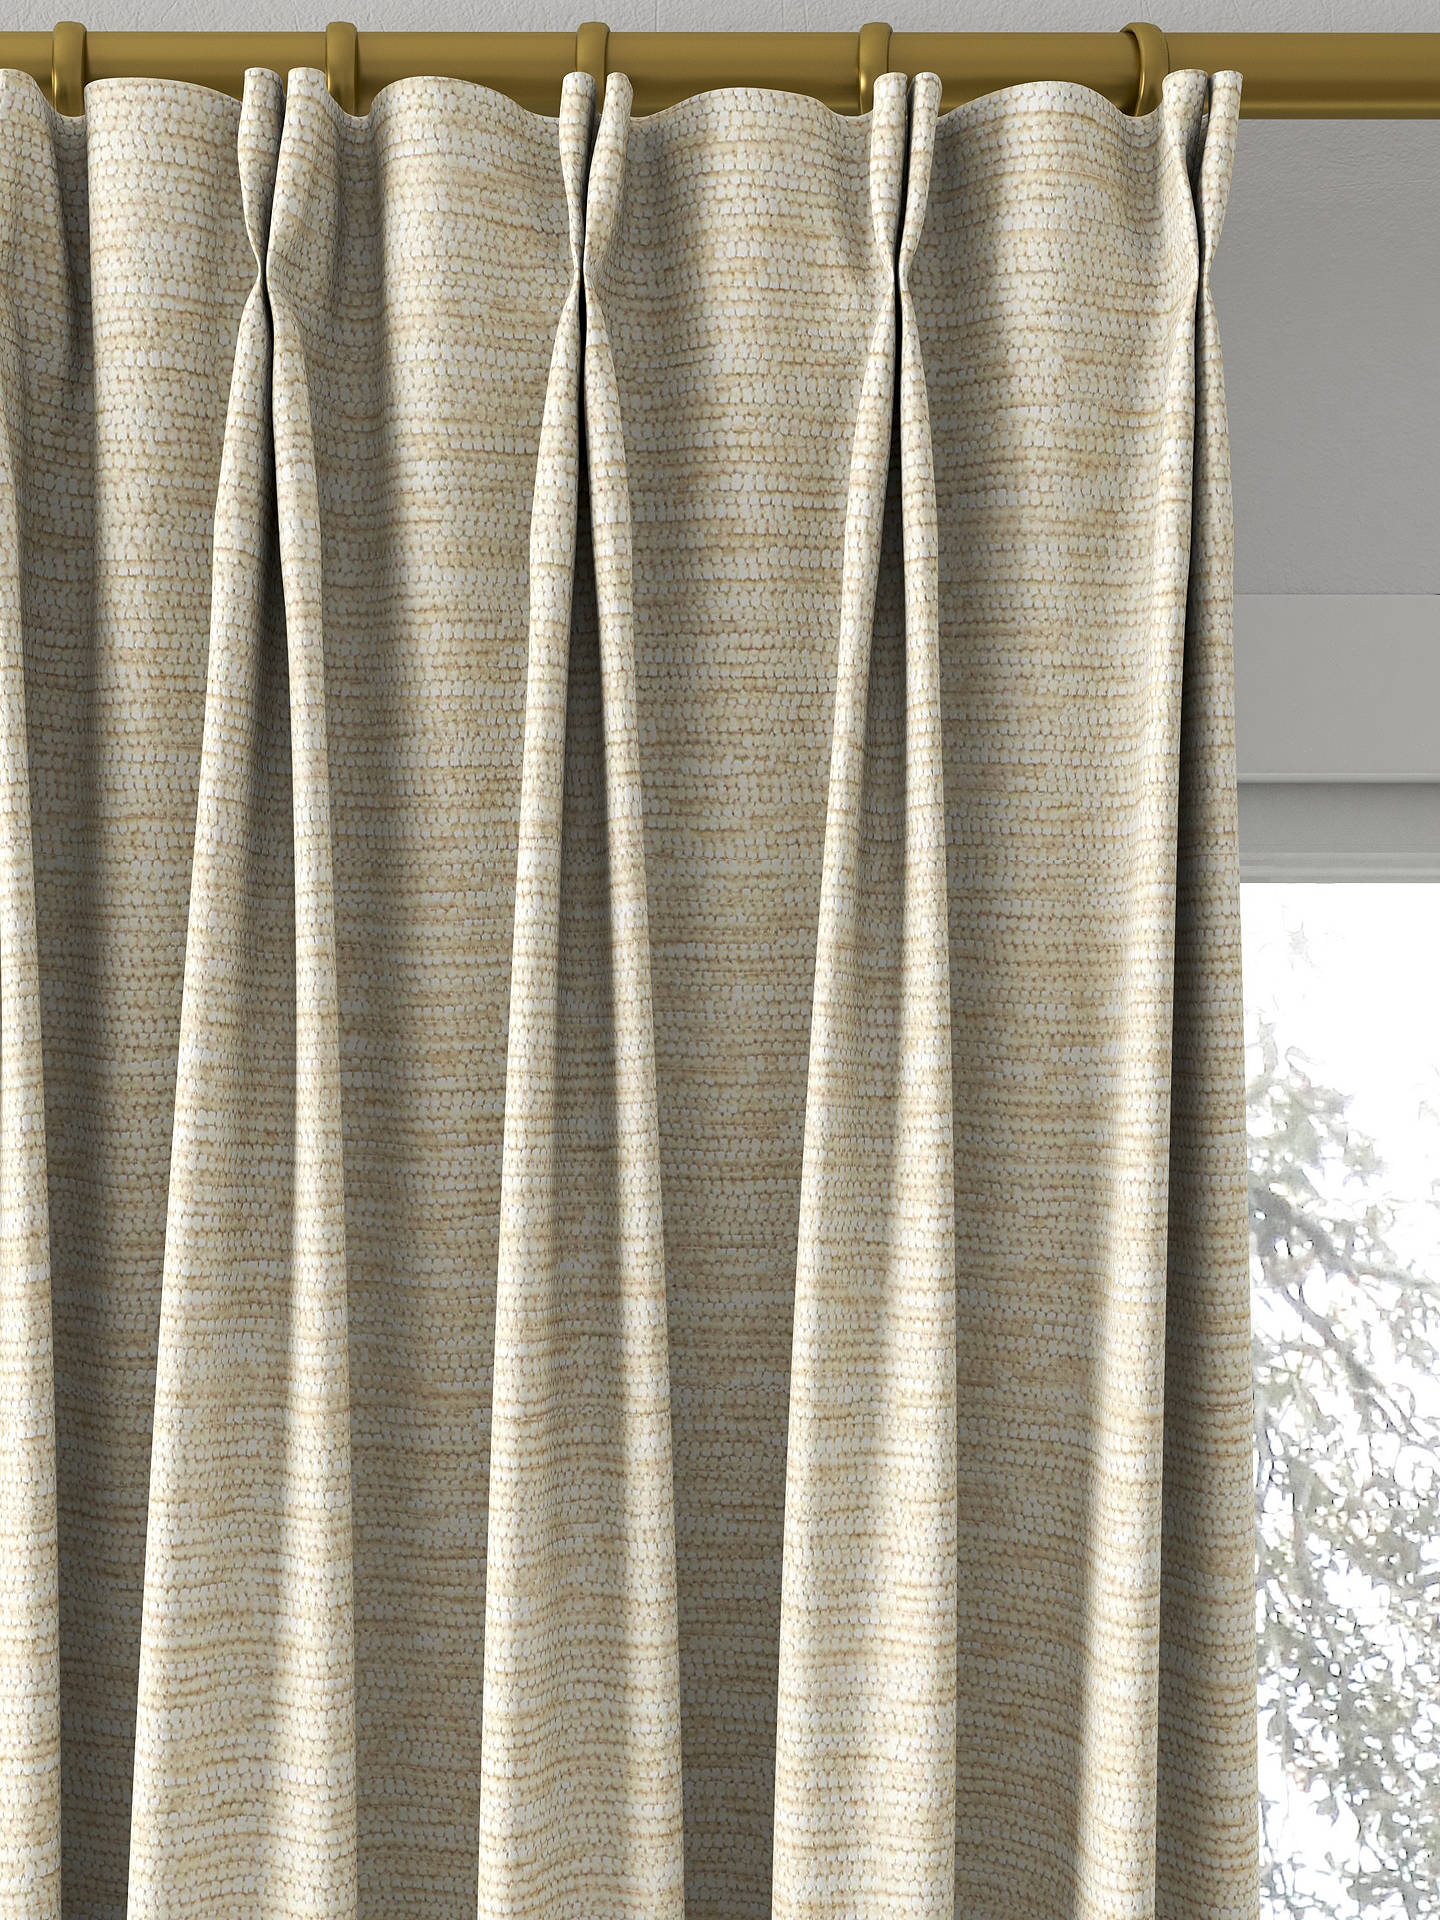 Buy john lewis partners zambia made to measure curtains natural online at johnlewis